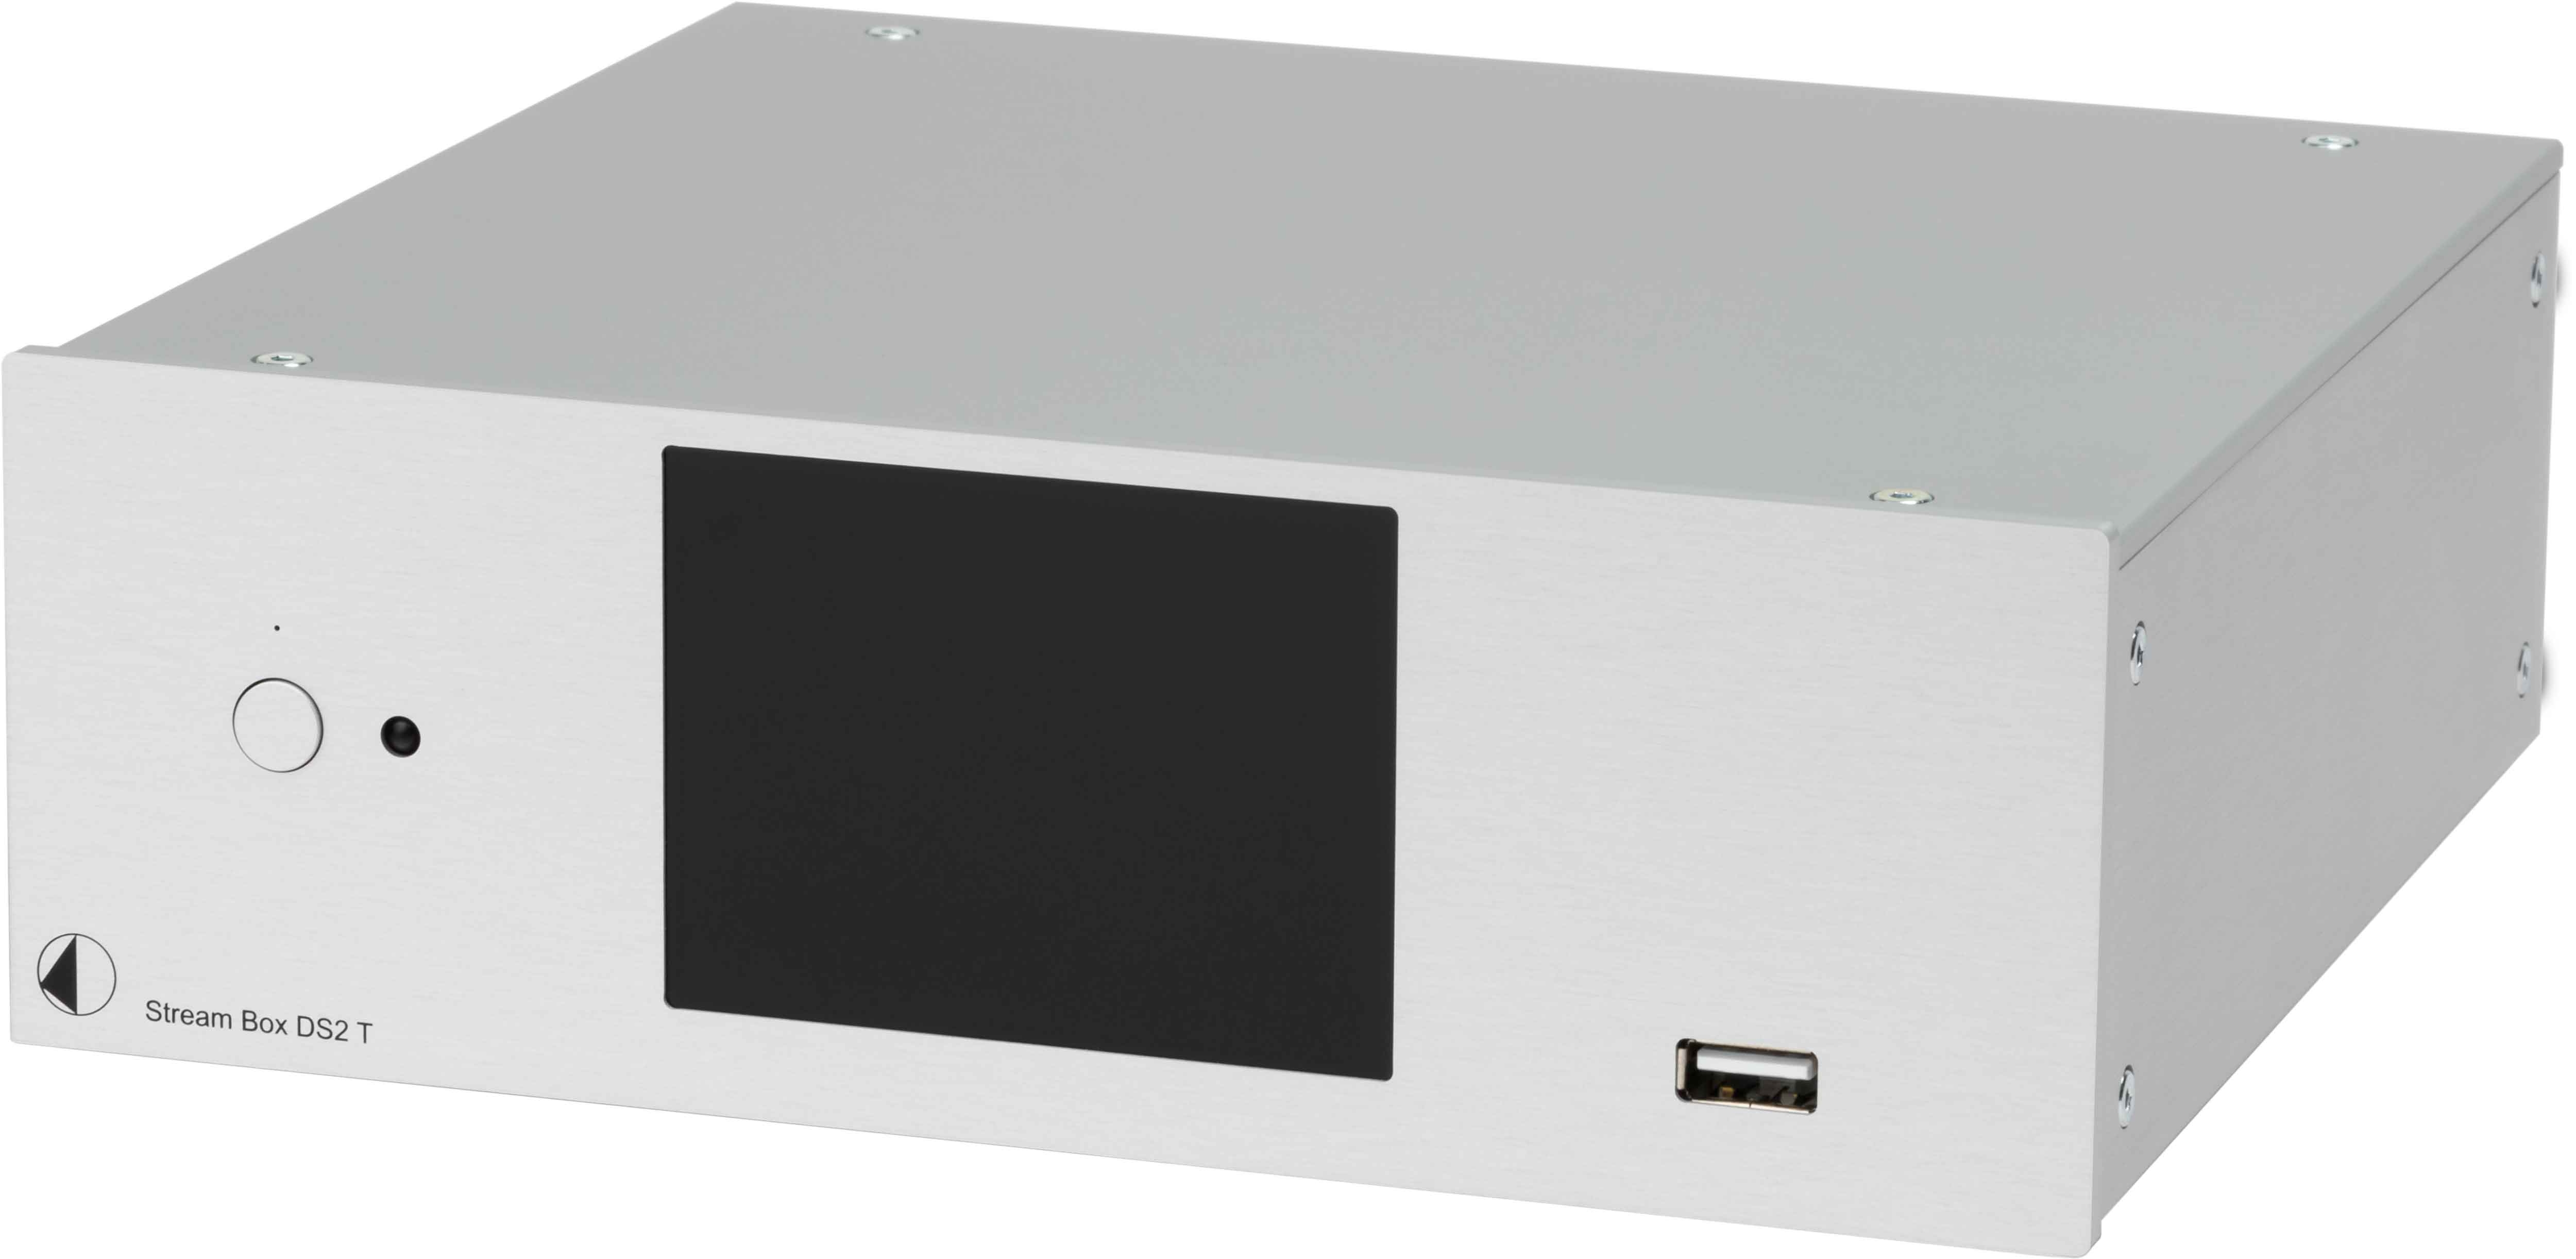 Pro-Ject Stream Box DS2 T striimeri